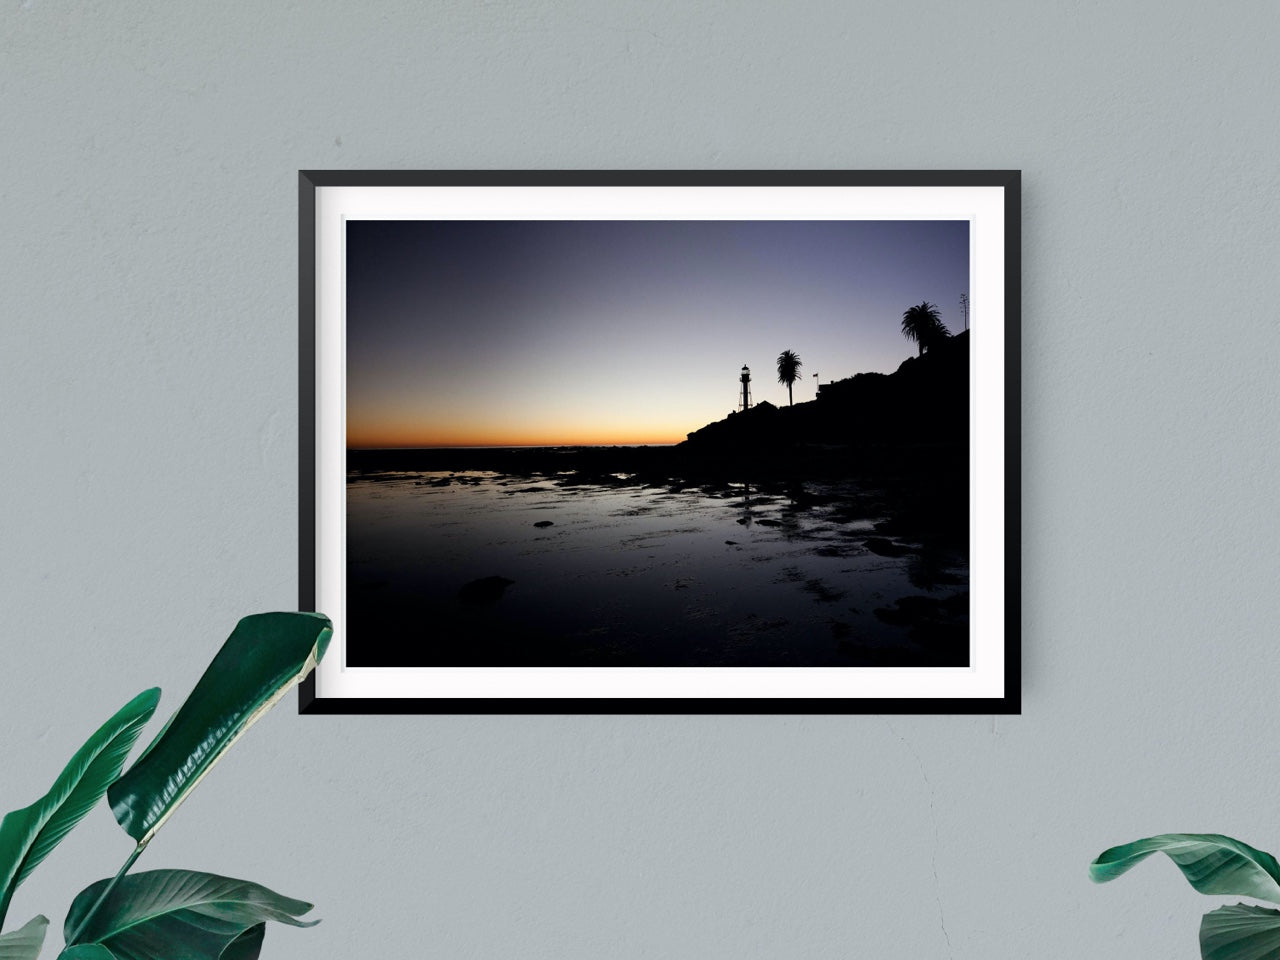 Coastal framed photo art